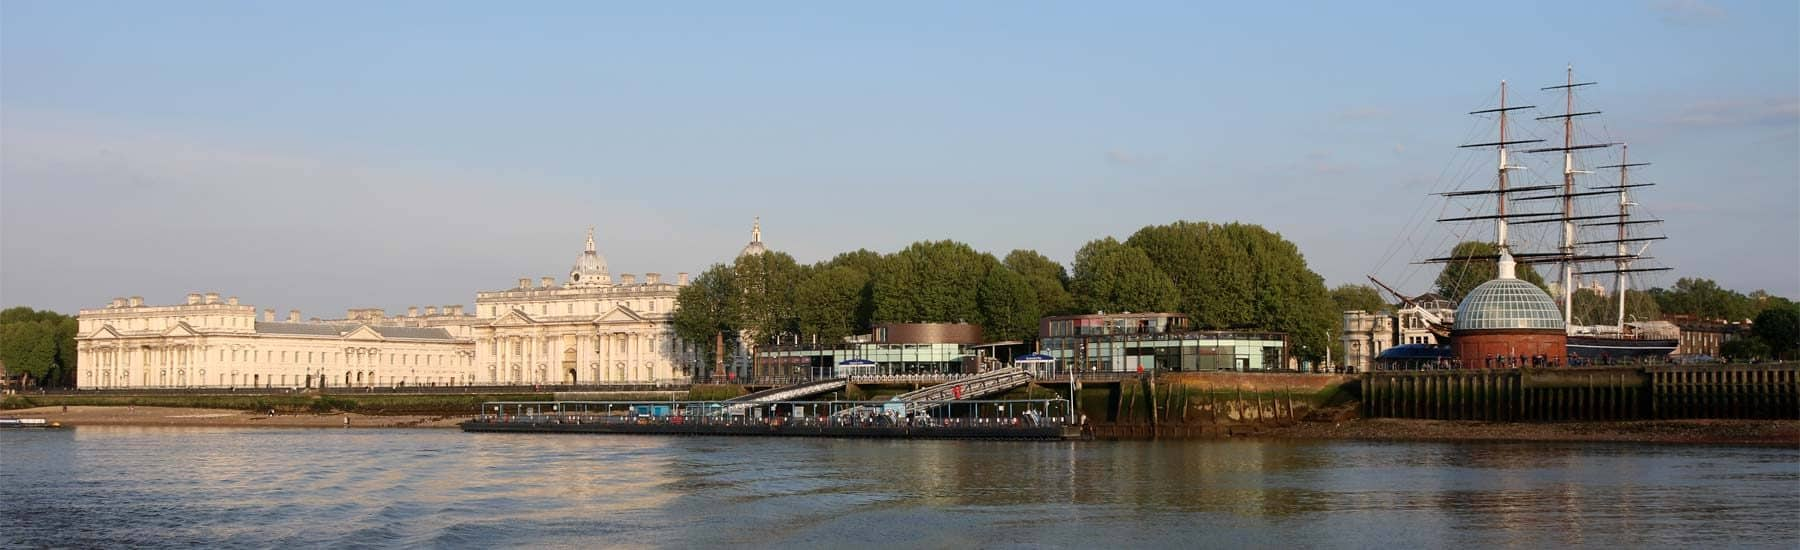 Thames River Sightseeing, Royal Borough of Greenwich